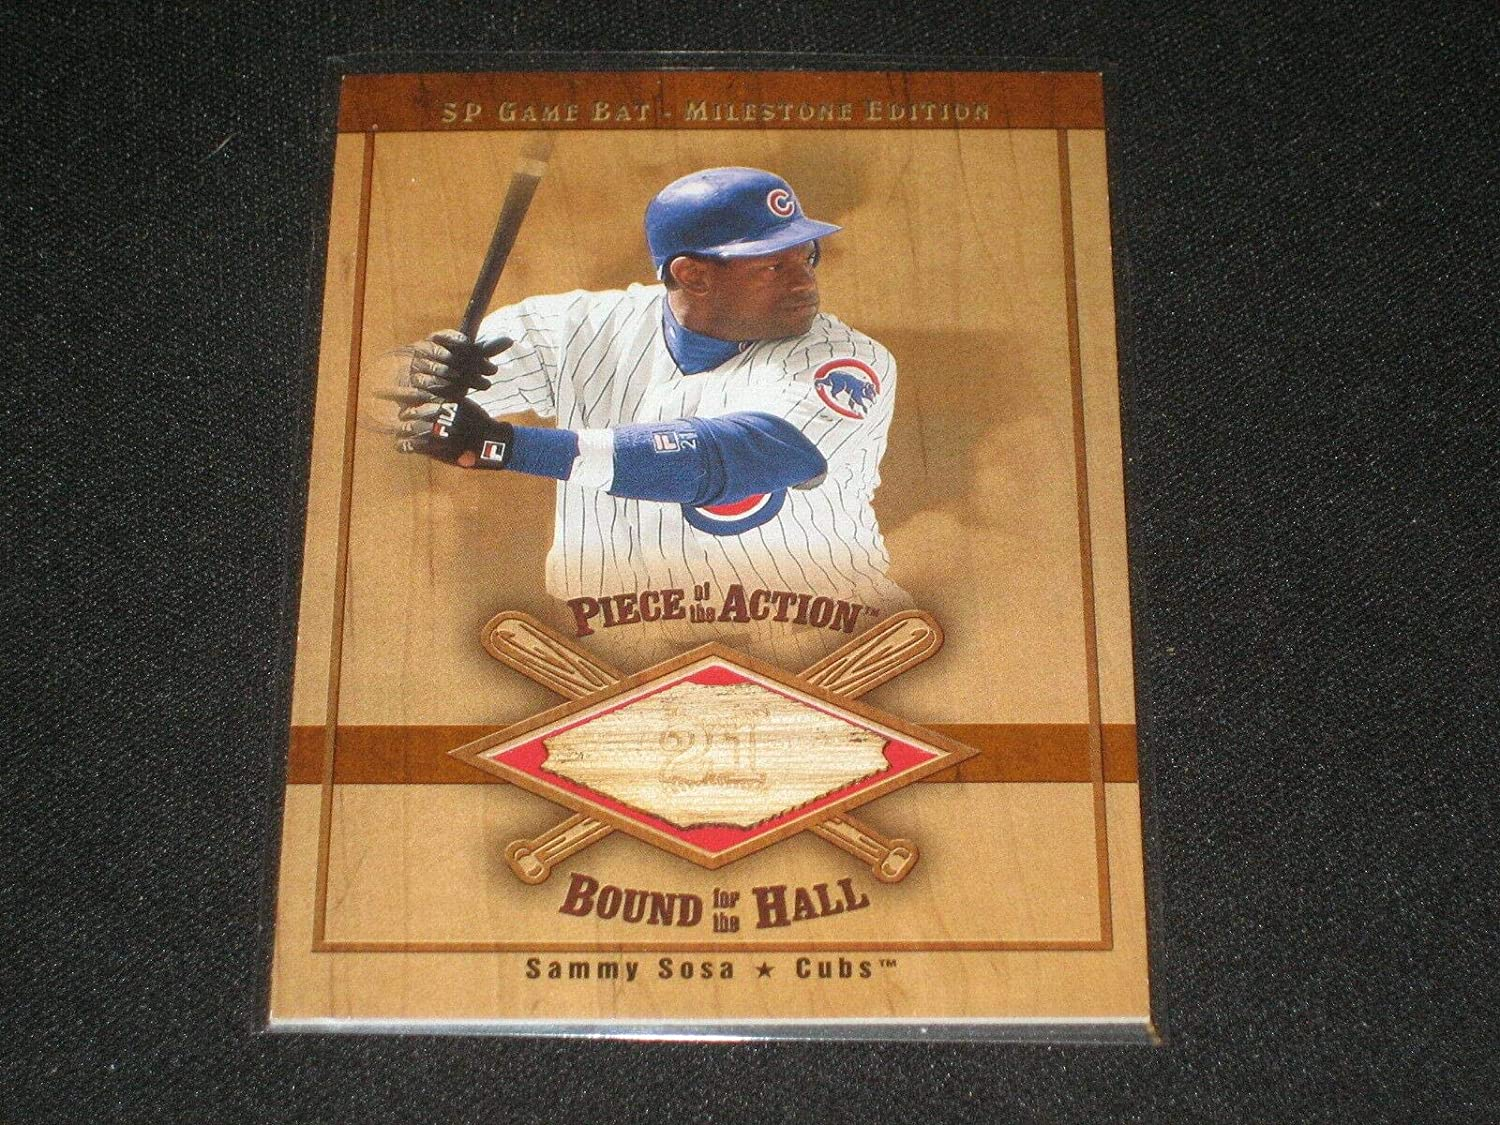 Sammy Sosa Cubs Legend 2001 Spring new work one after another Certified Ud Gam Authentic Milestone Seasonal Wrap Introduction